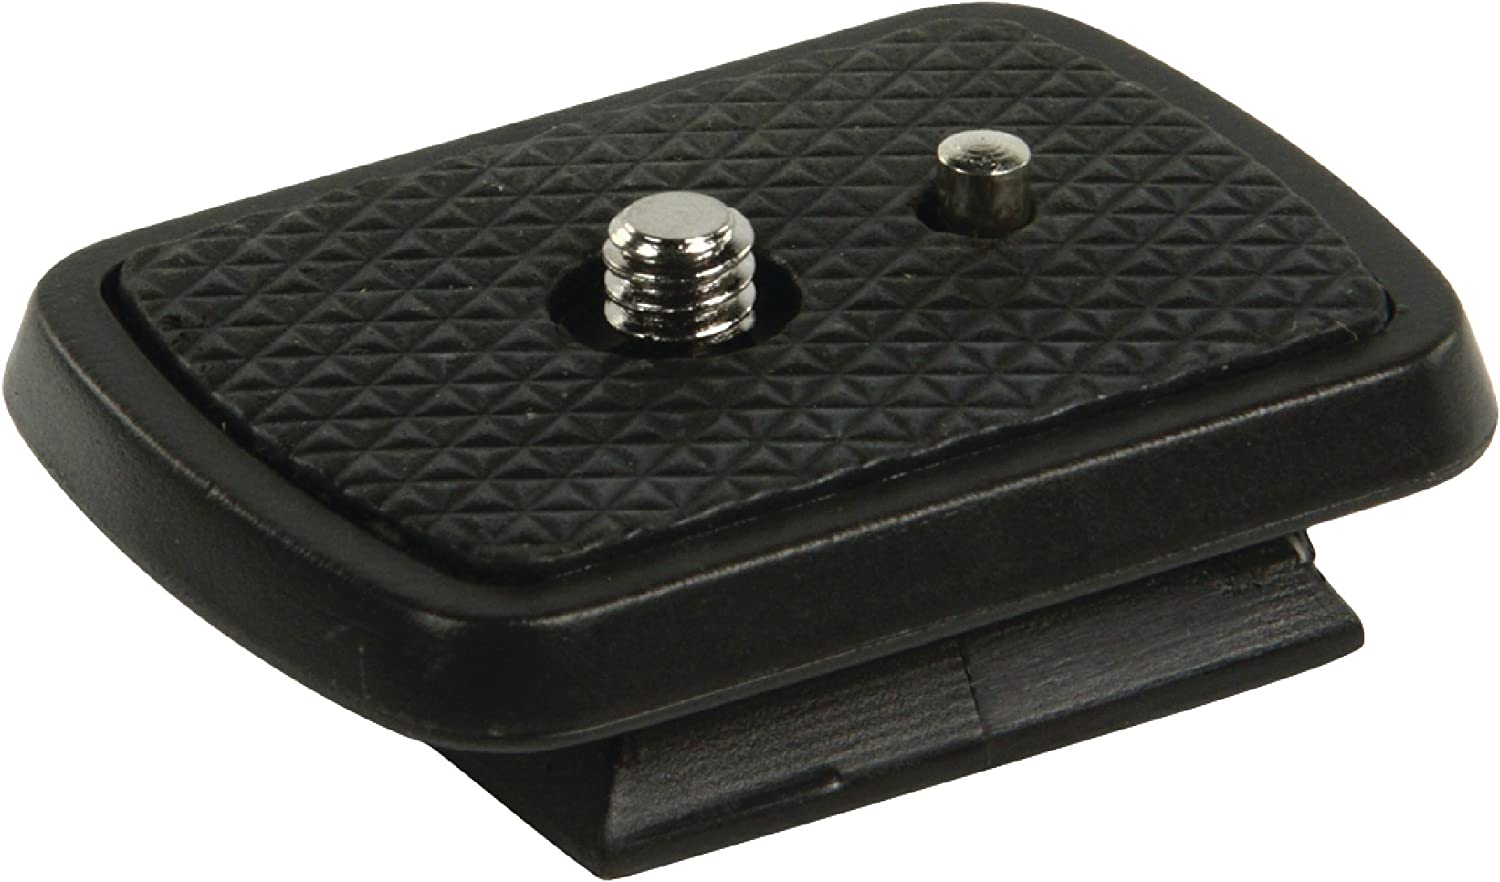 Camlink CL-QR21 Quick Release Plate for CL-TP2100